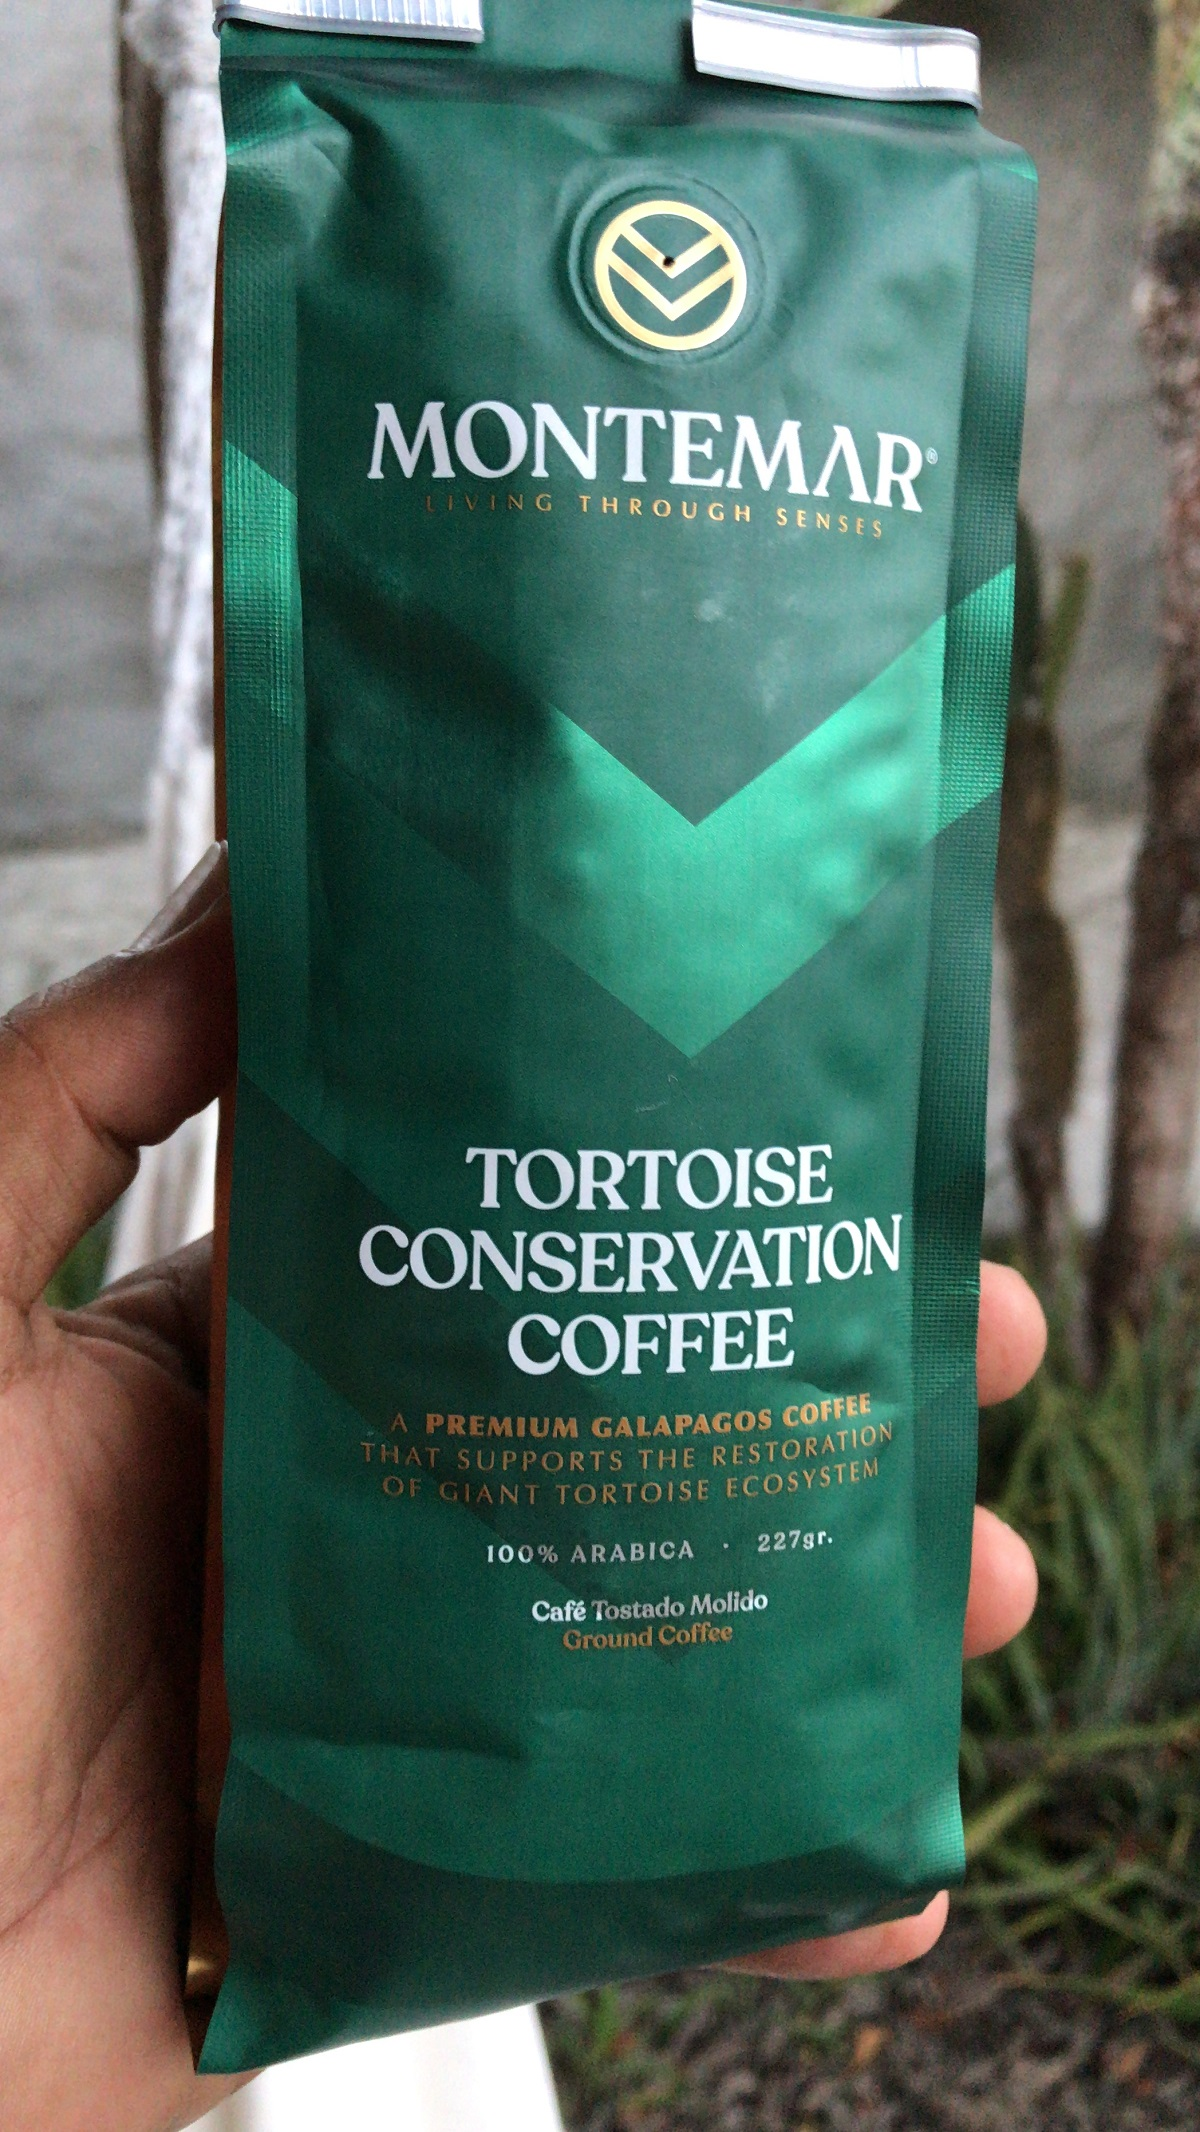 Tortoise Conservation Coffee in the Galapagos